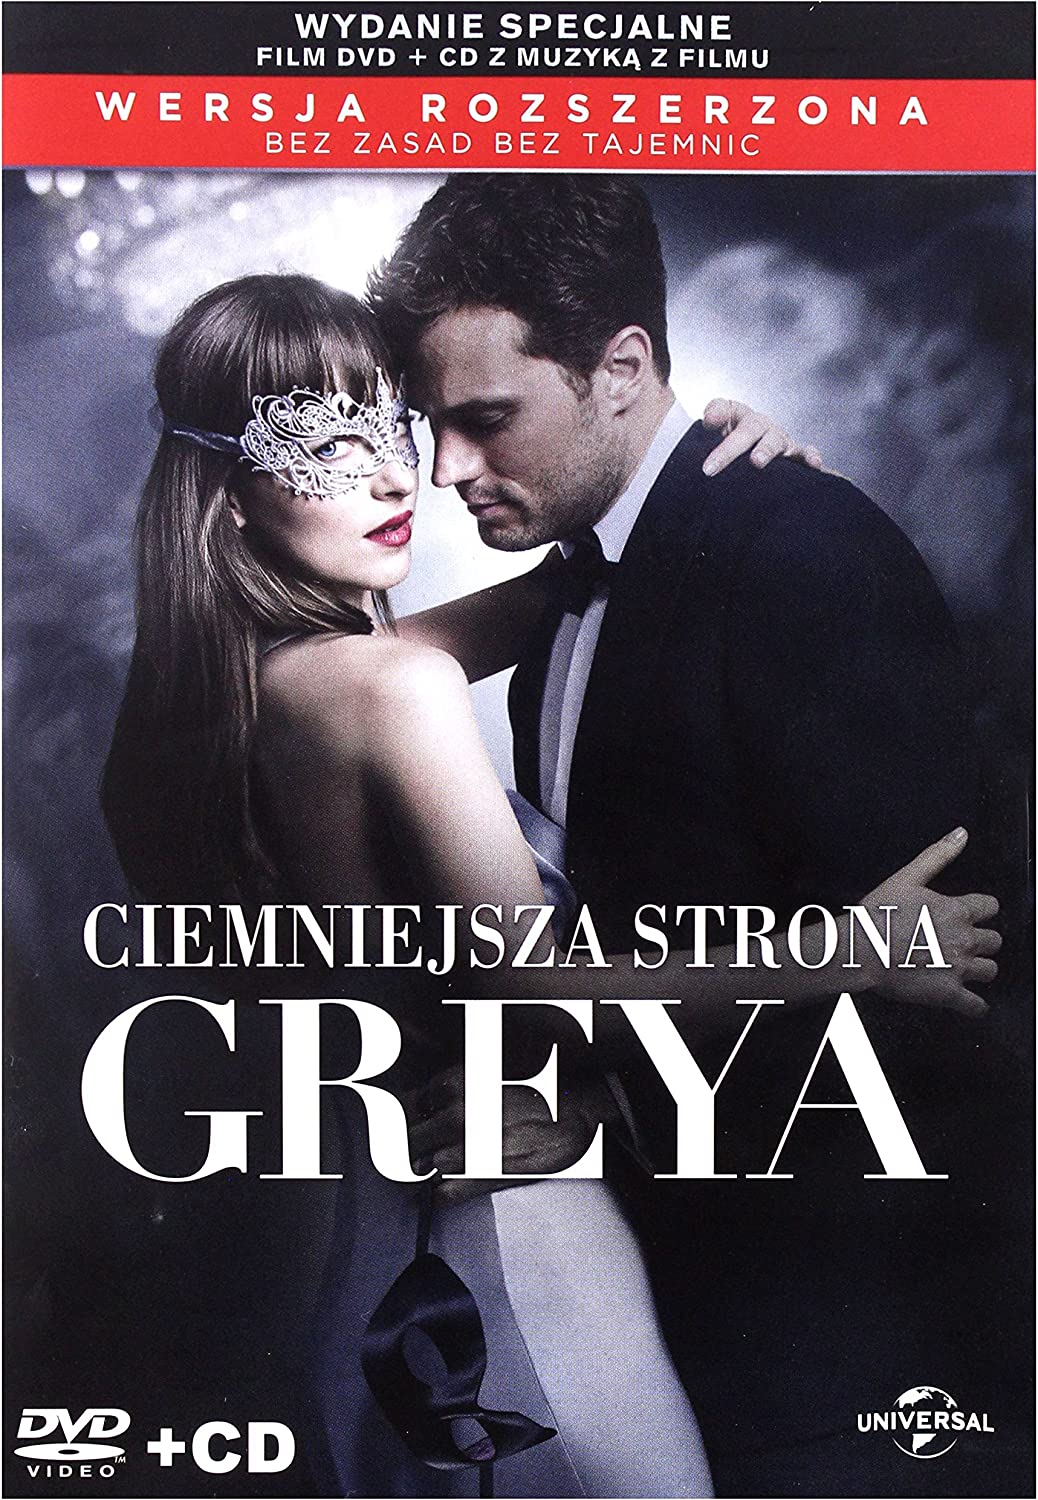 Of download grey with english movie subtitles fifty shades Fifty Shades